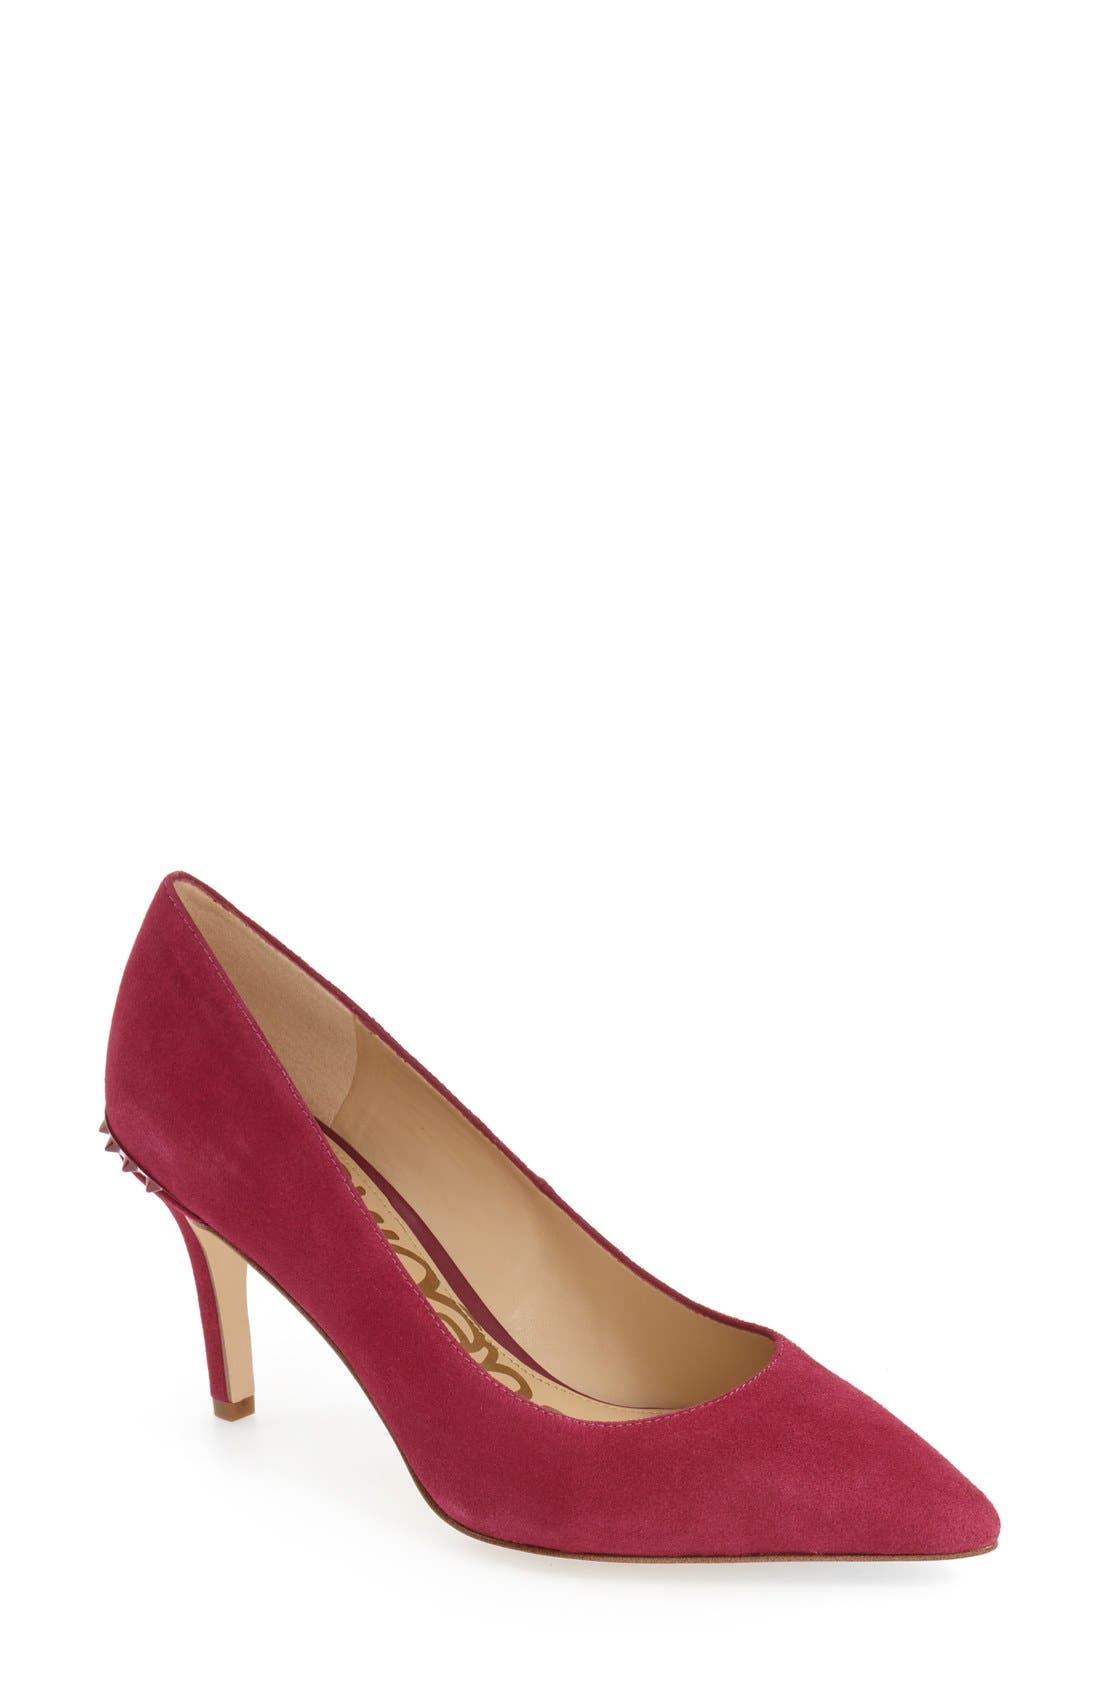 'Tonia' Spike Rand Pointy Toe Pump,                             Main thumbnail 1, color,                             Pink Suede